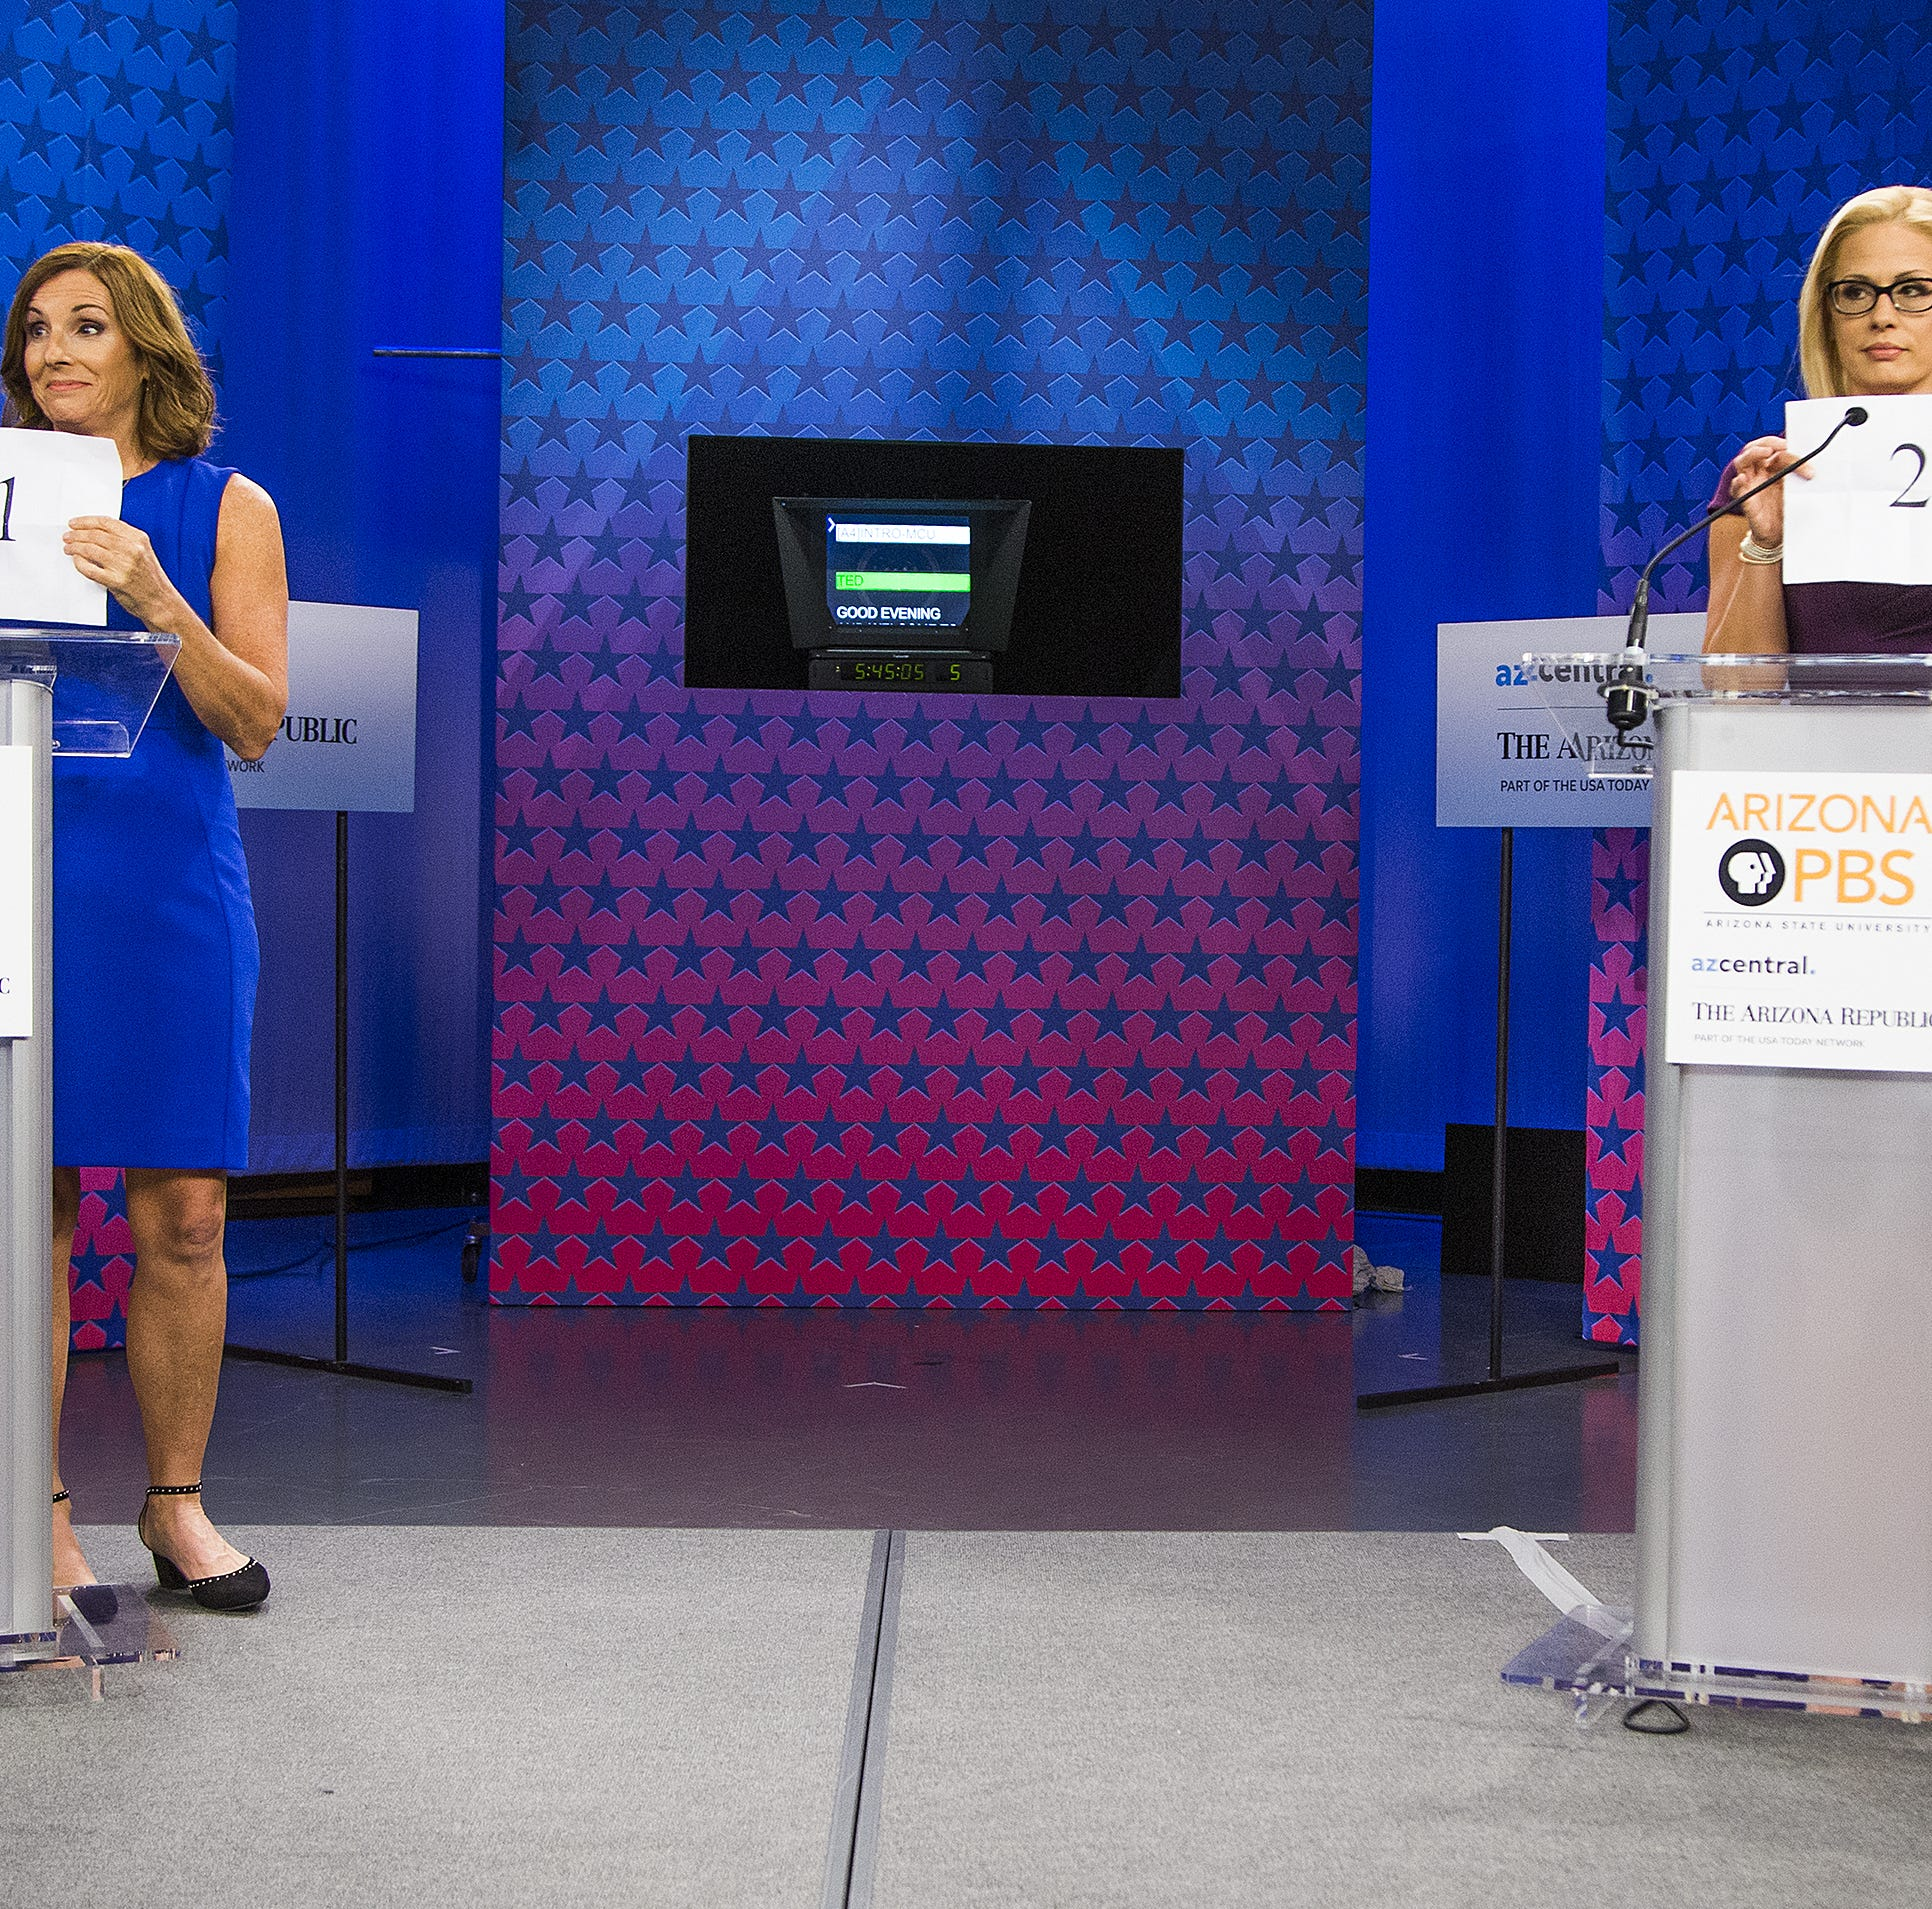 Kyrsten Sinema, Martha McSally square off over health care, immigration in Senate debate